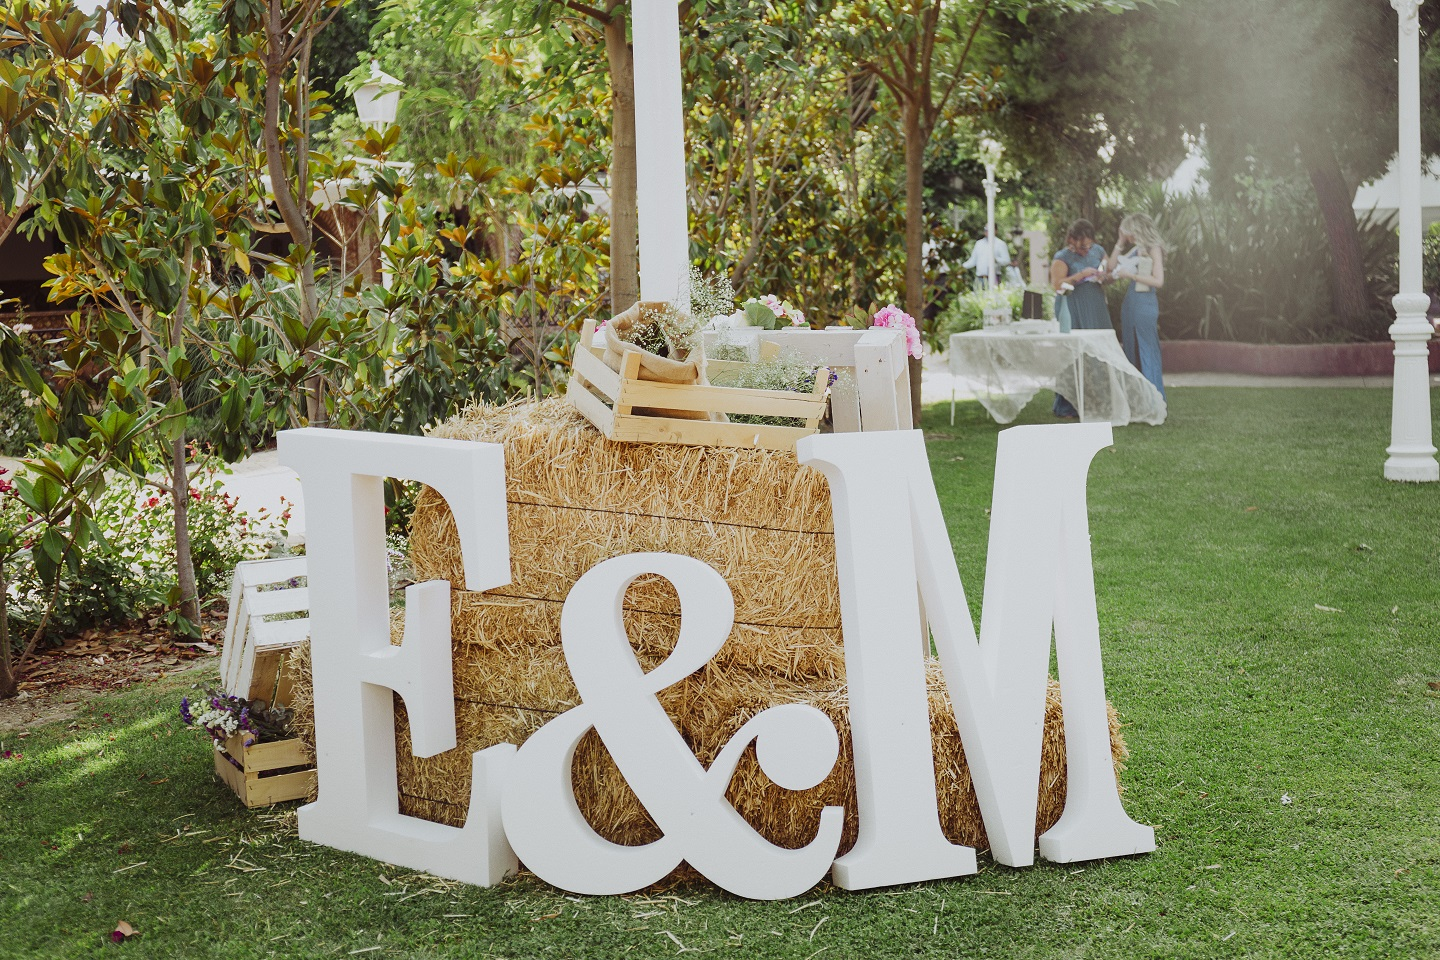 nn_wedding_decoracion_letras_novios.jpg